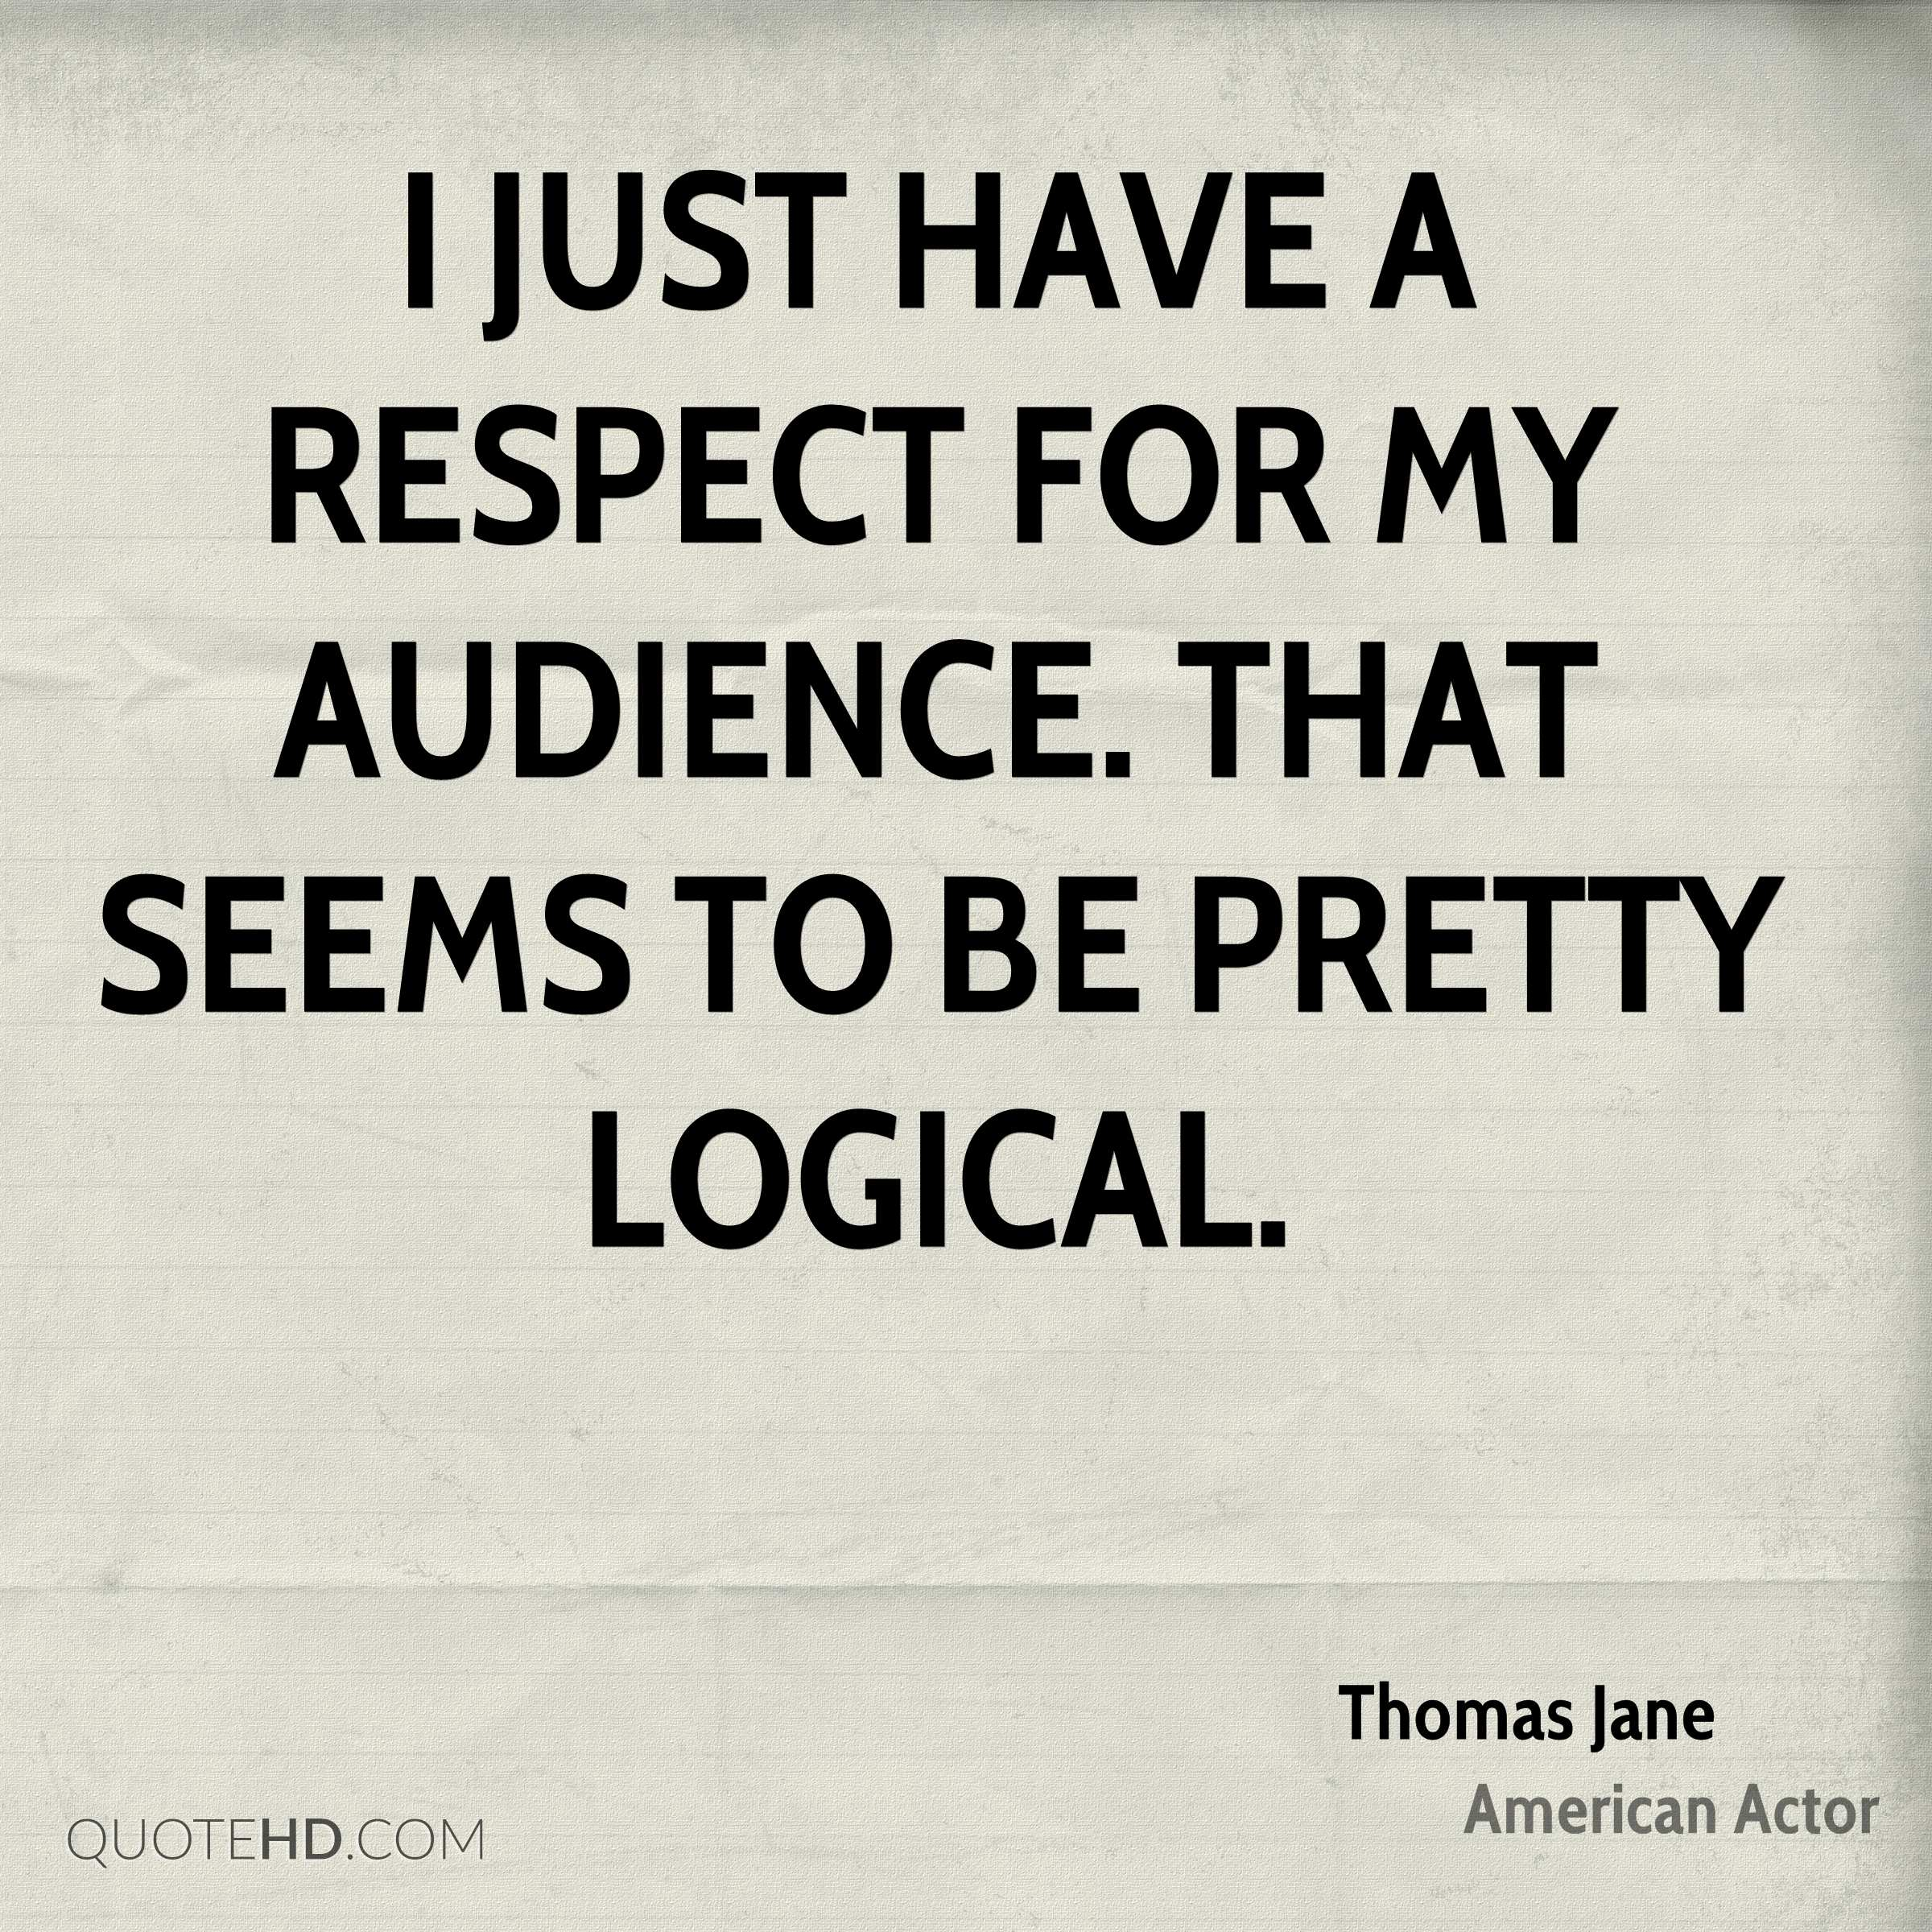 I just have a respect for my audience. That seems to be pretty logical.